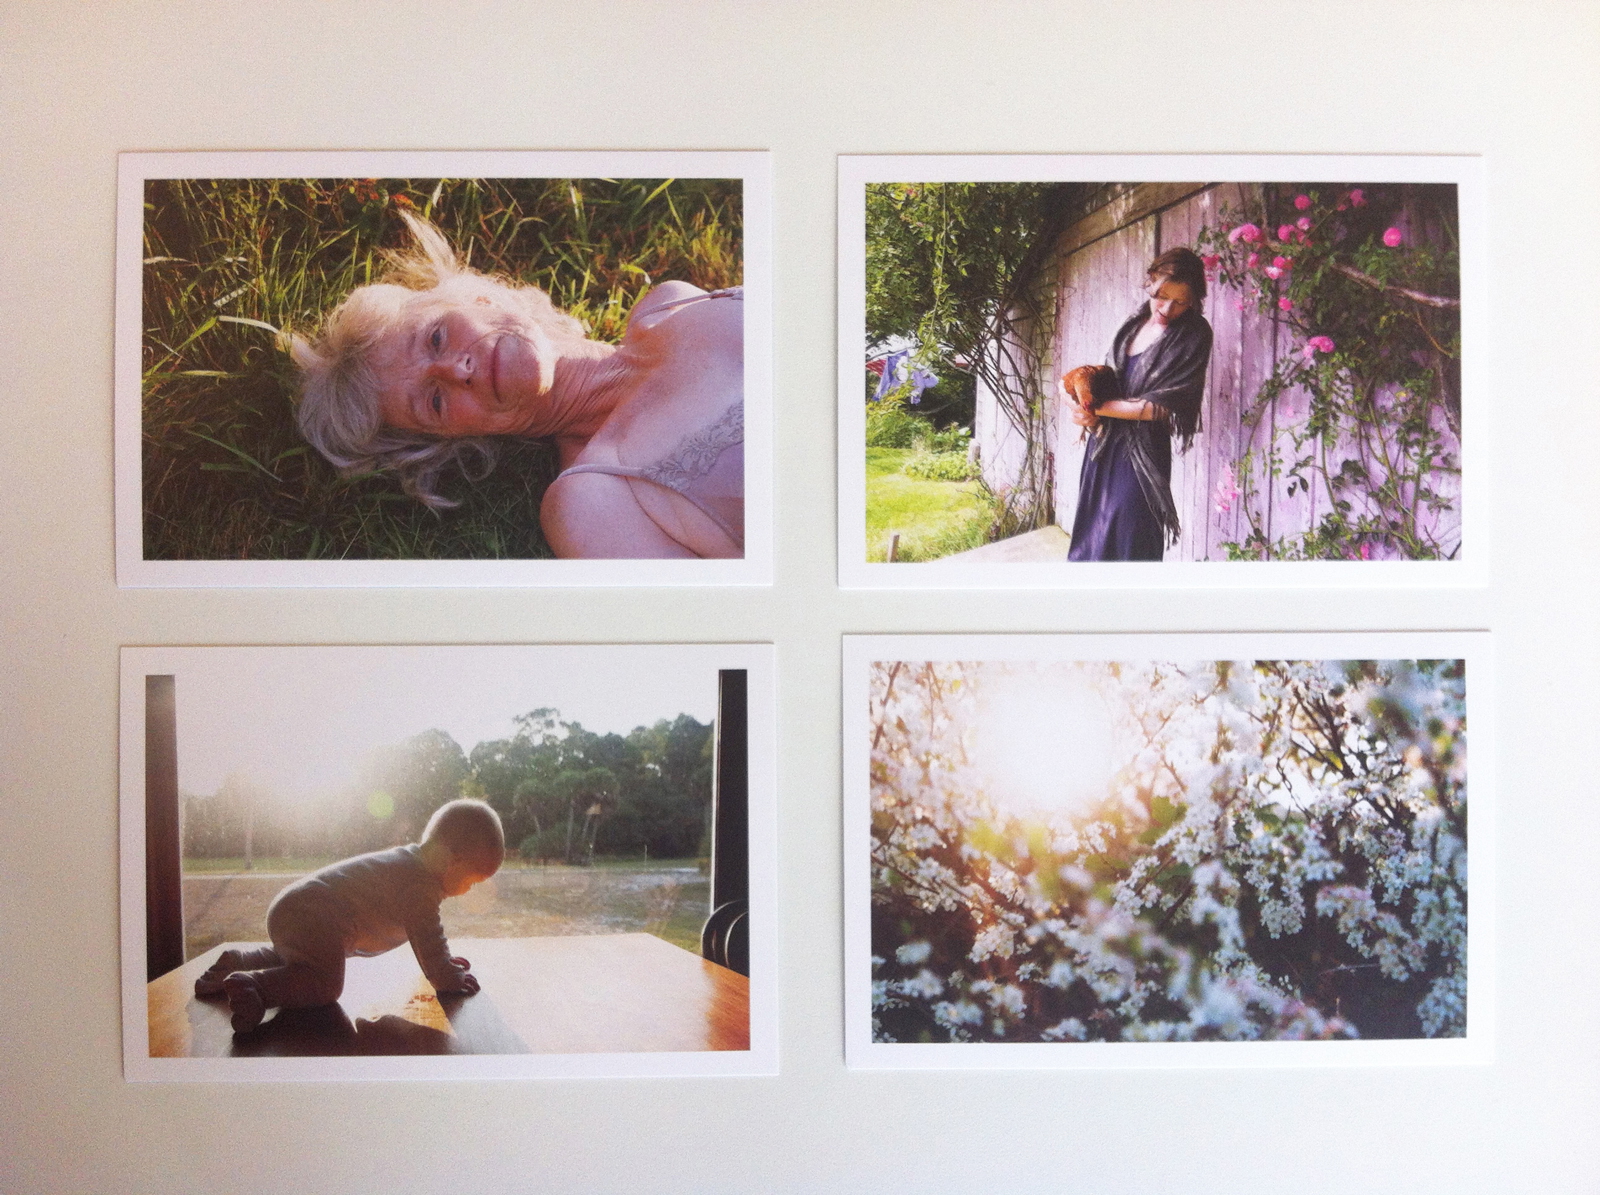 All four promo cards Katherine Wolkoff sent in one envelope. chicken baby flowers garden lifestyle beautiful table window